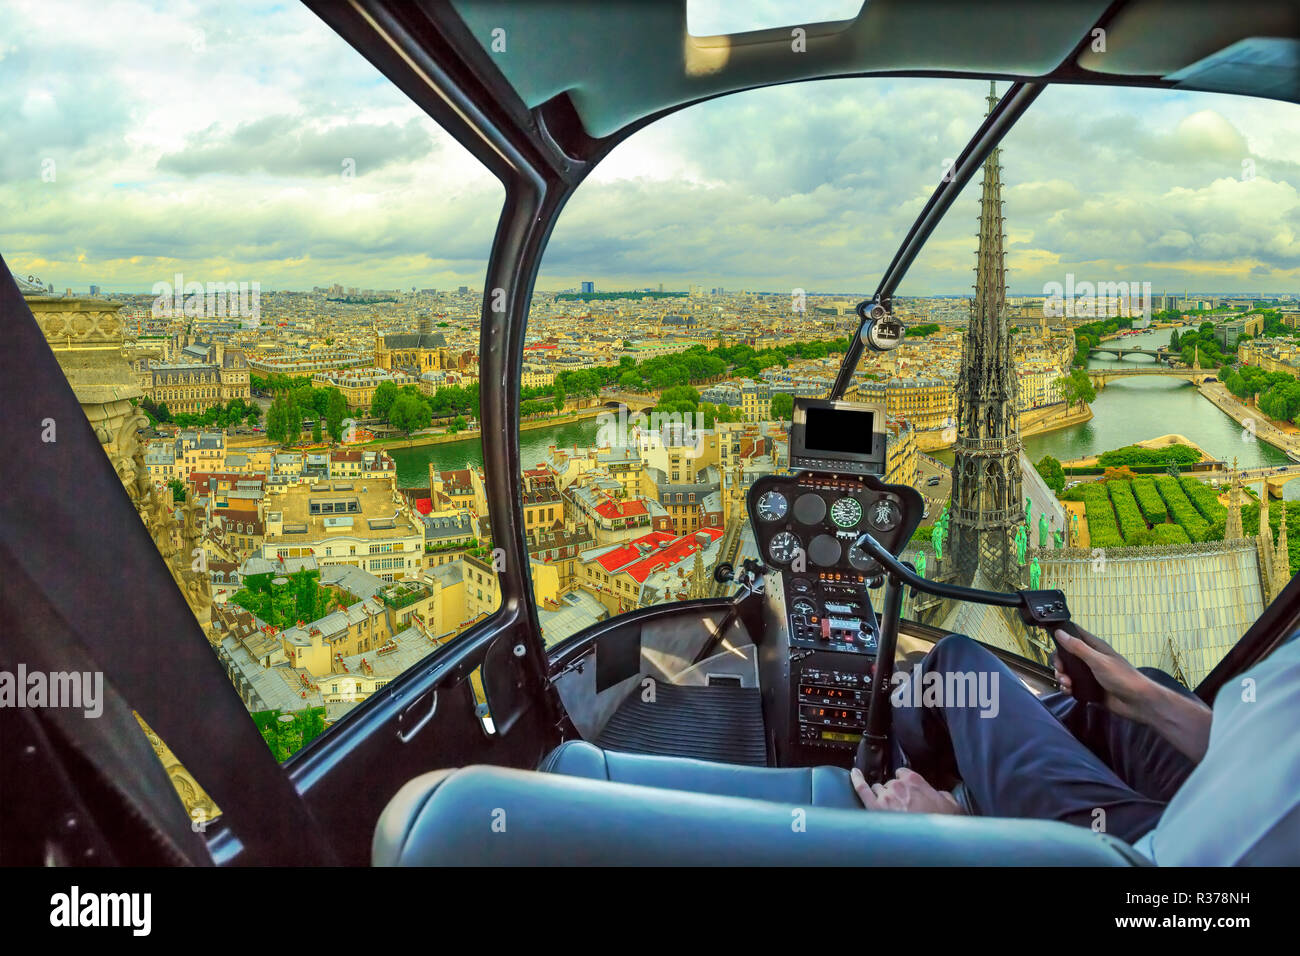 Helicopter cockpit flying on Pont Saint-Michel bridge on Senna river of Paris, French capital, Europe. Scenic flight above Paris skyline. Stock Photo